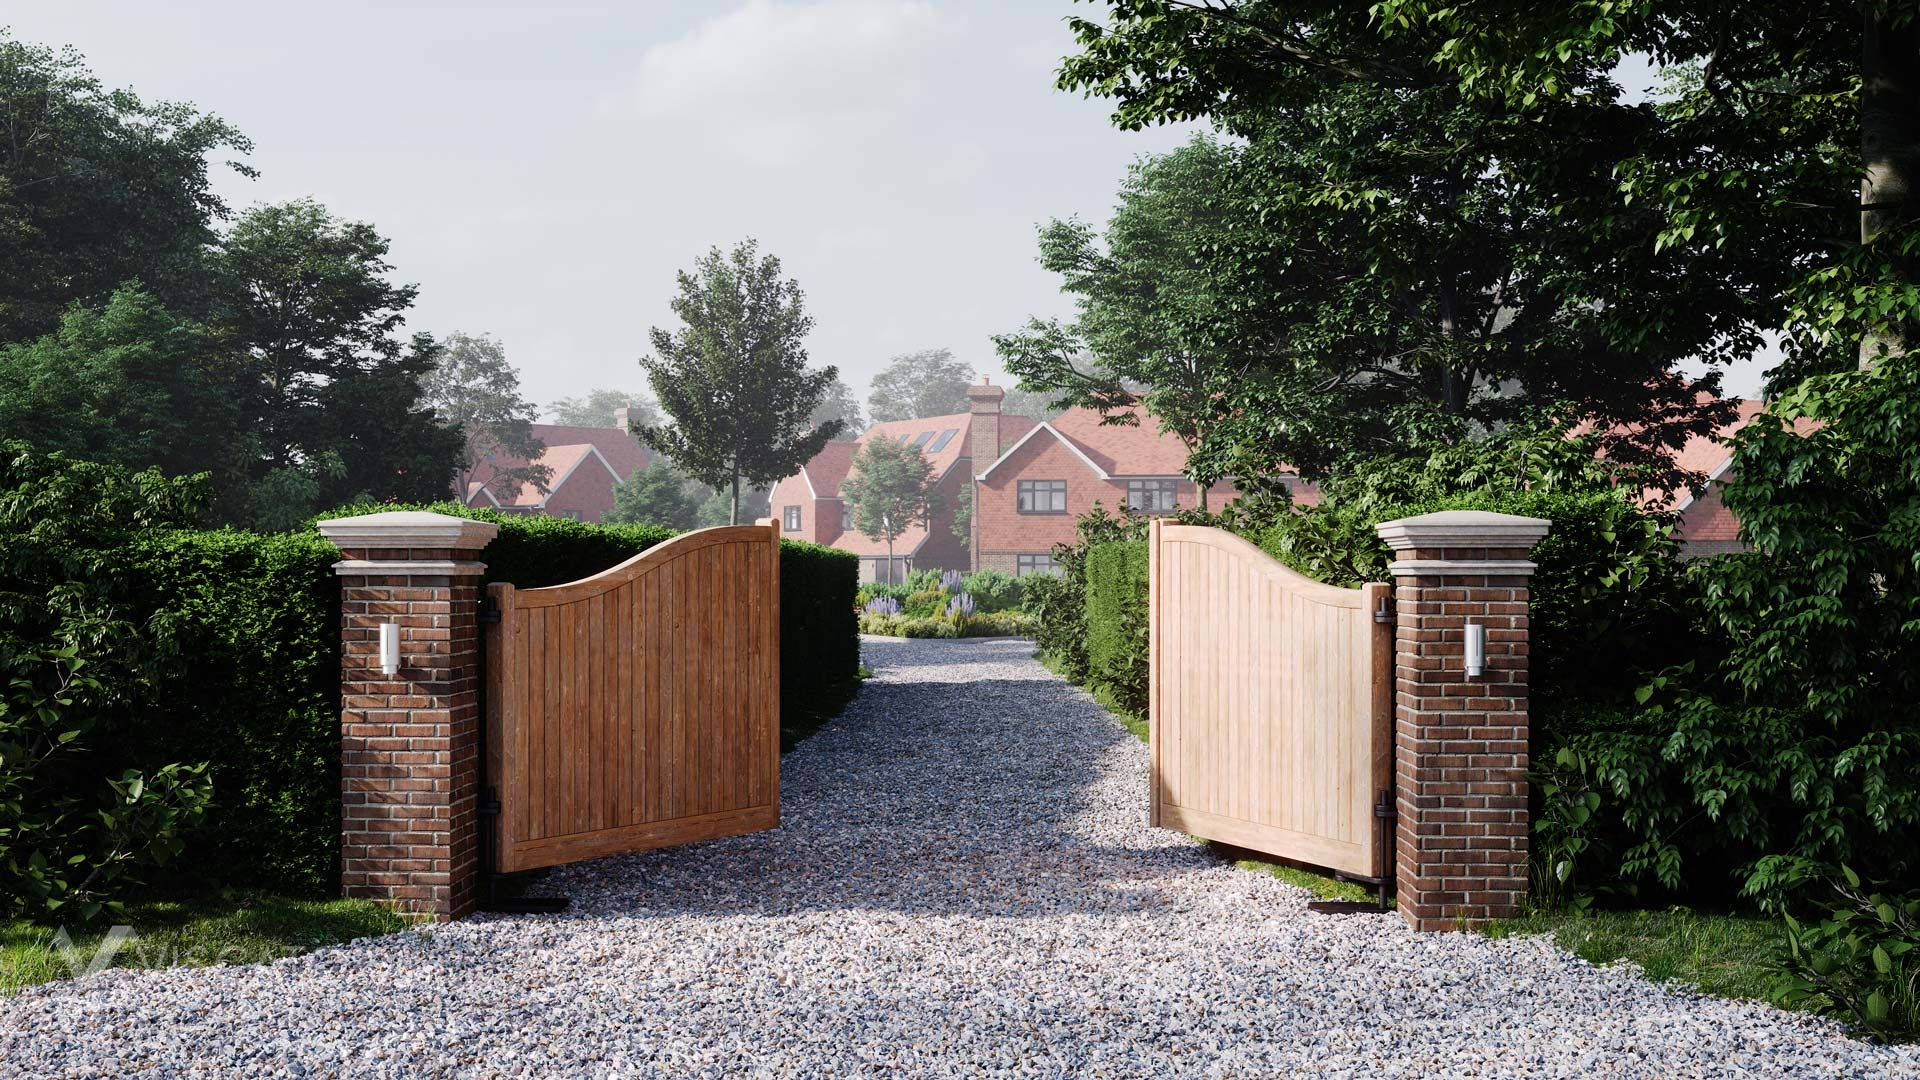 Wooden gate to the housing estate, 3D visualizations